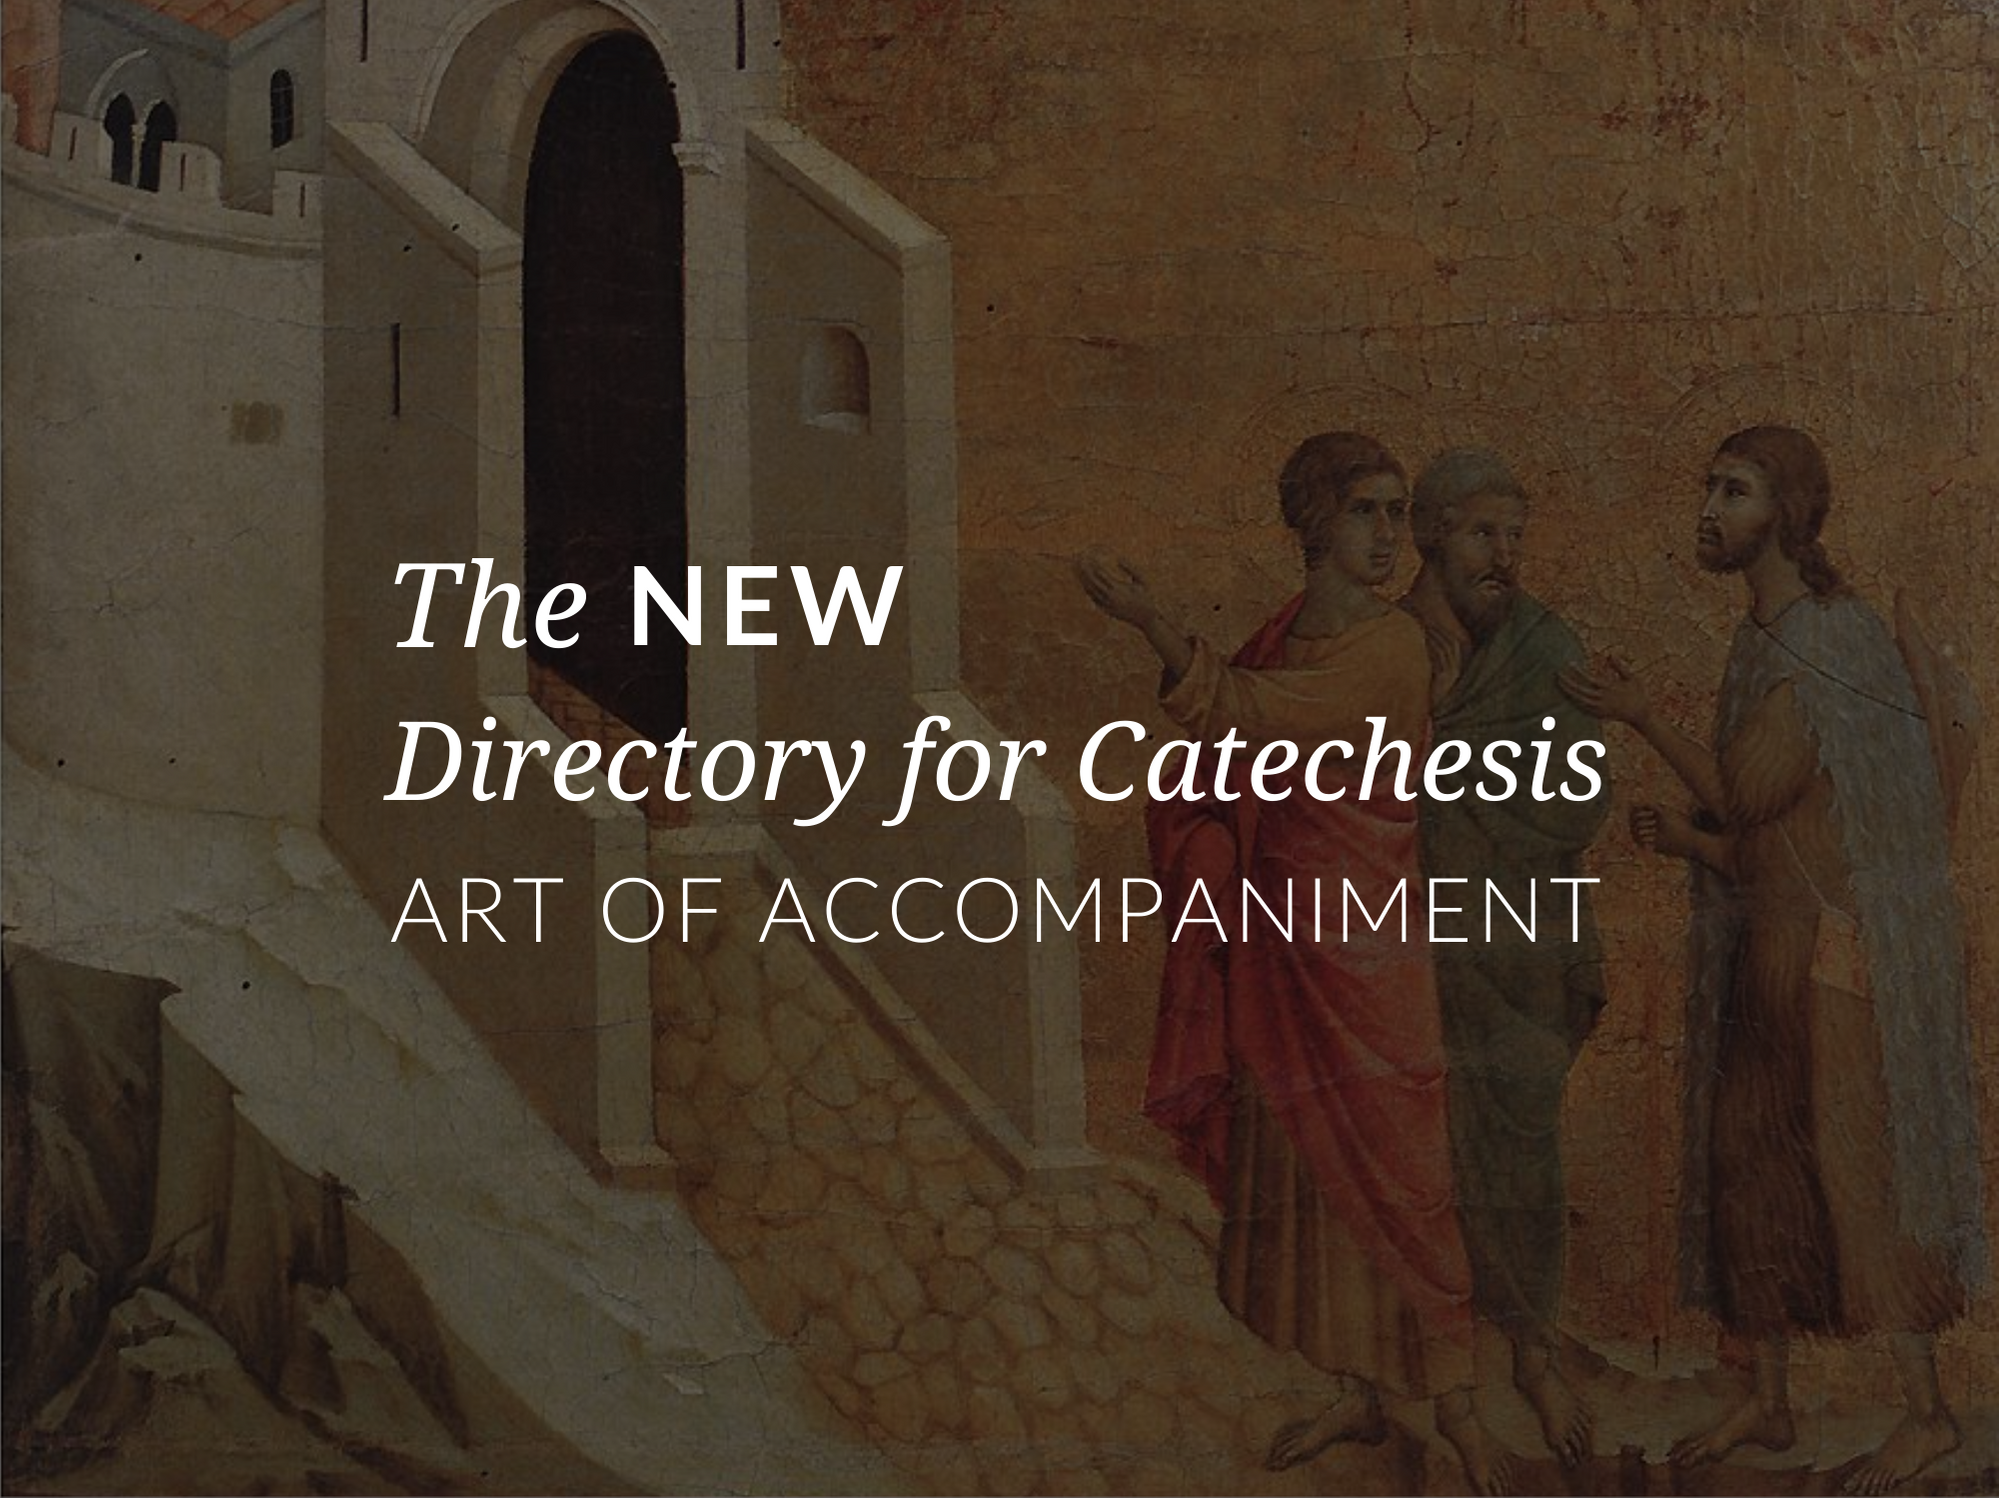 new-directory-for-catechesis-art-of-accompaniment